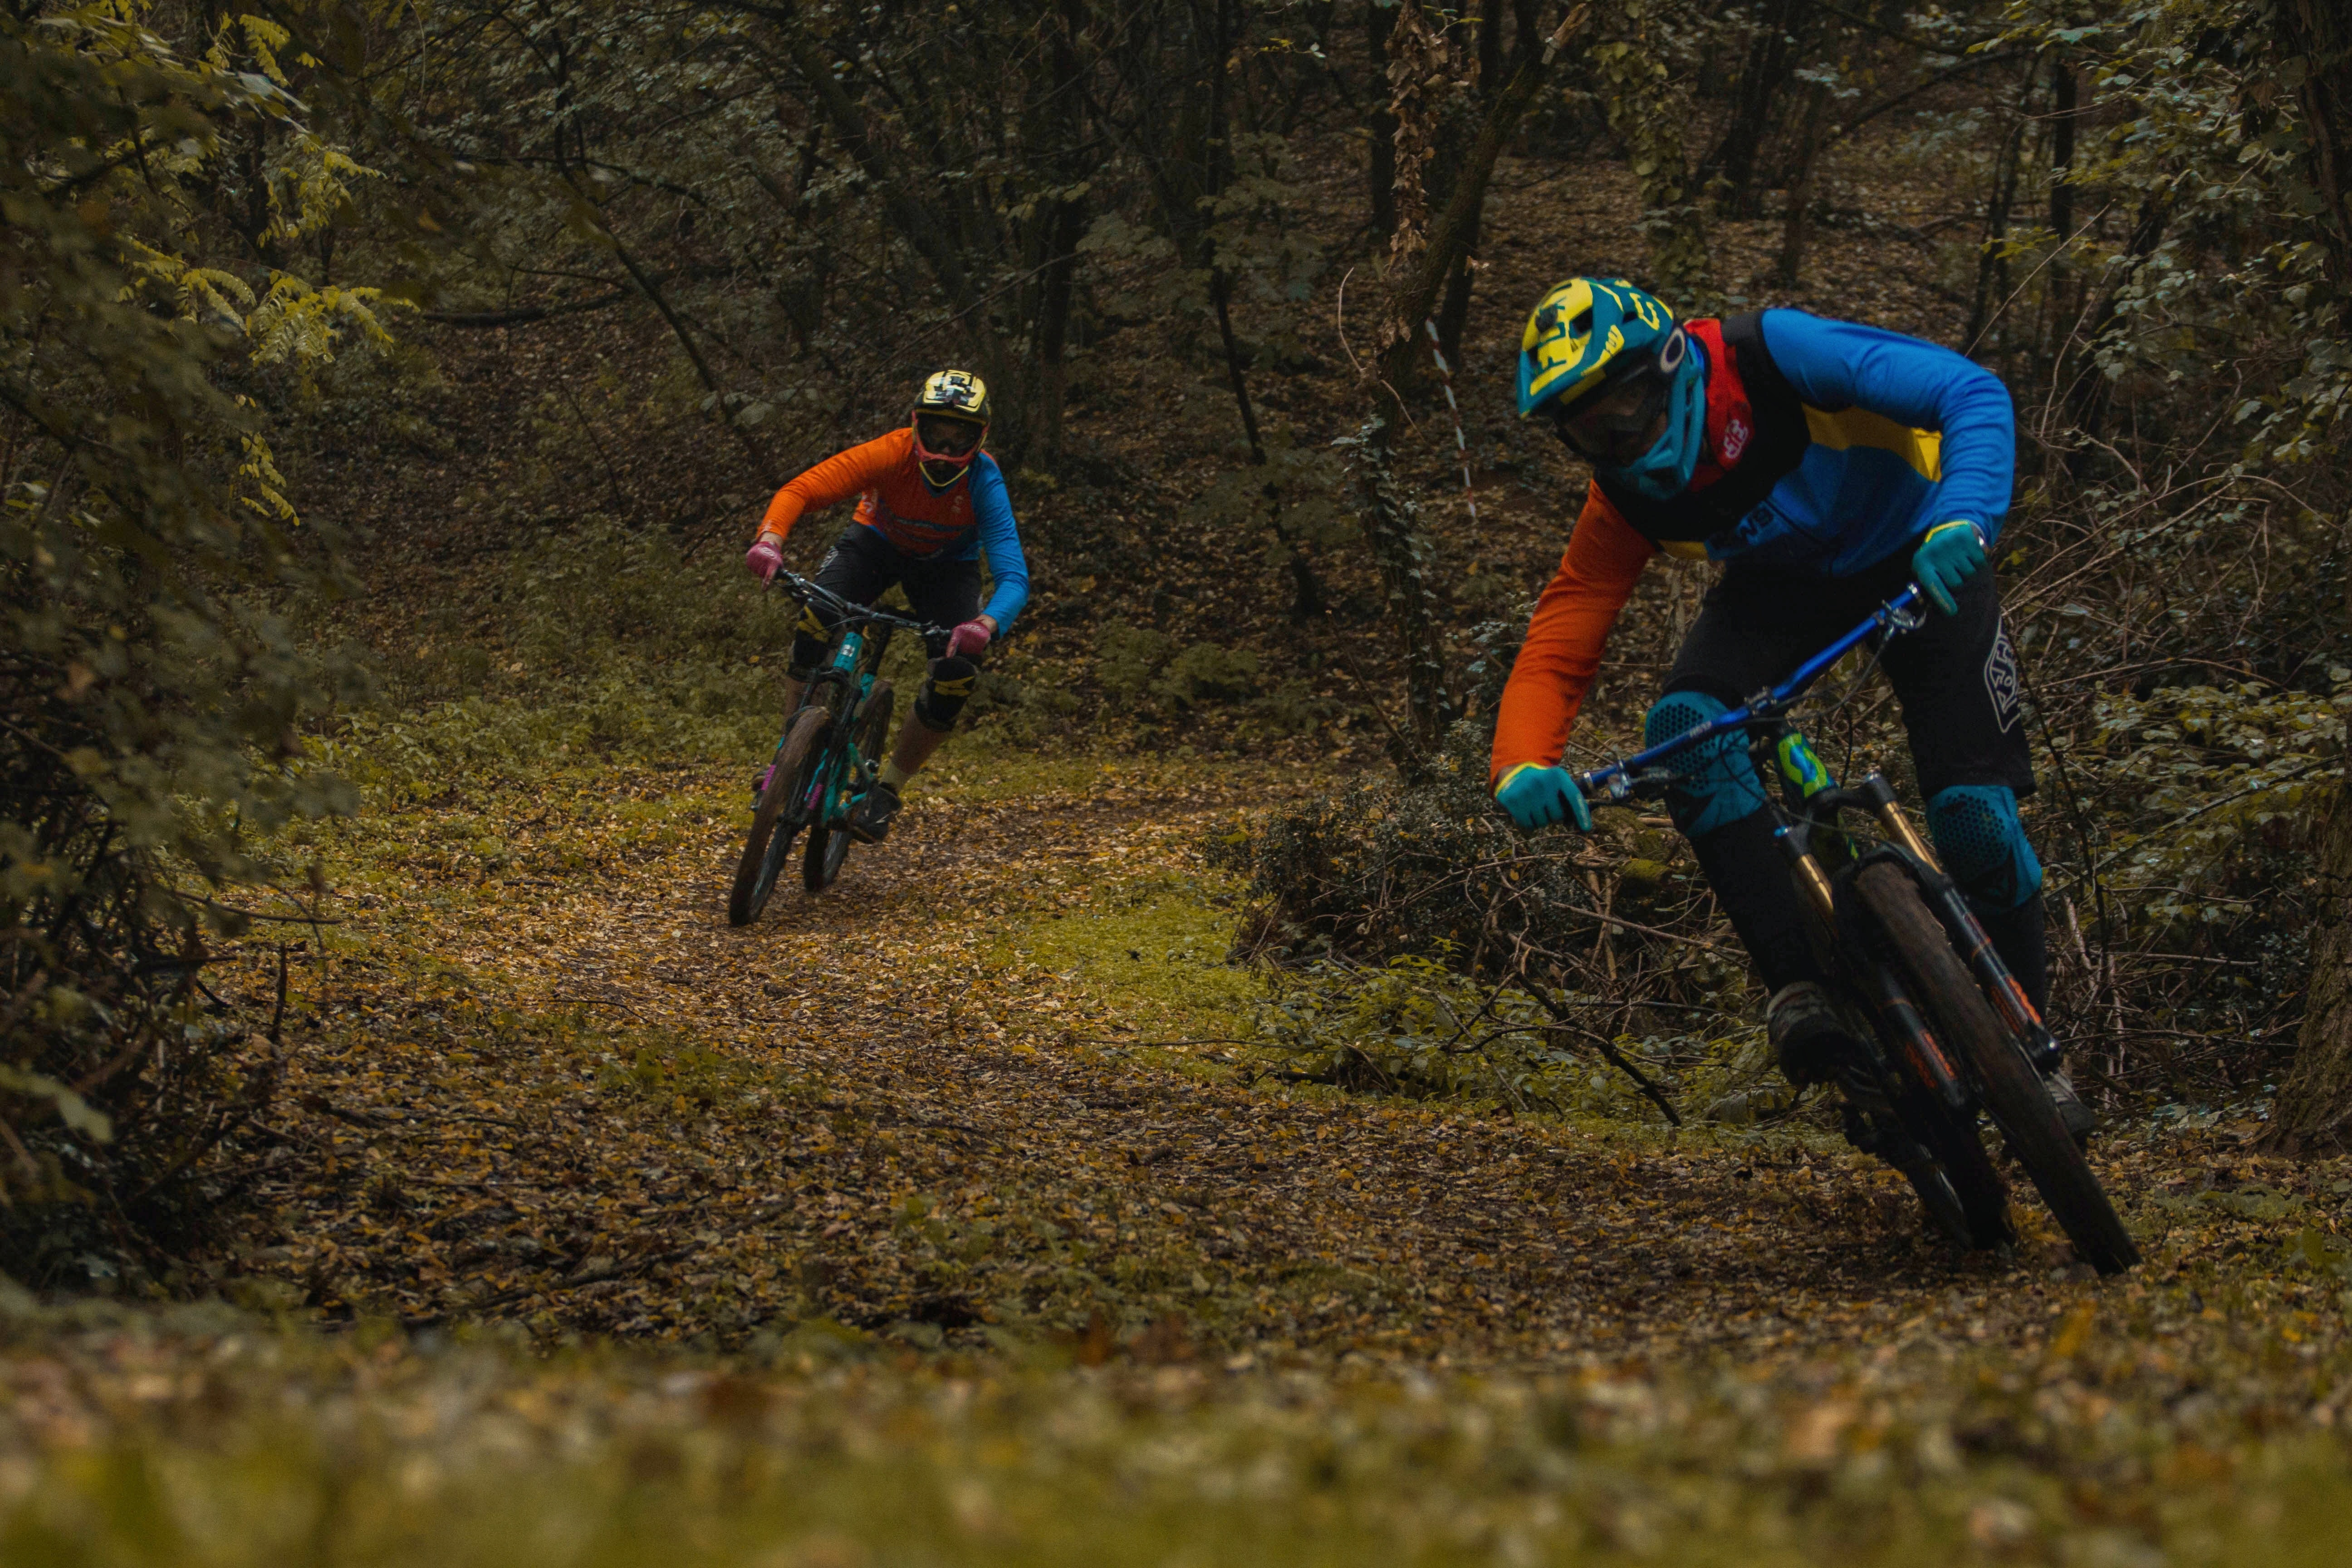 two person riding hardtail bikes on trail